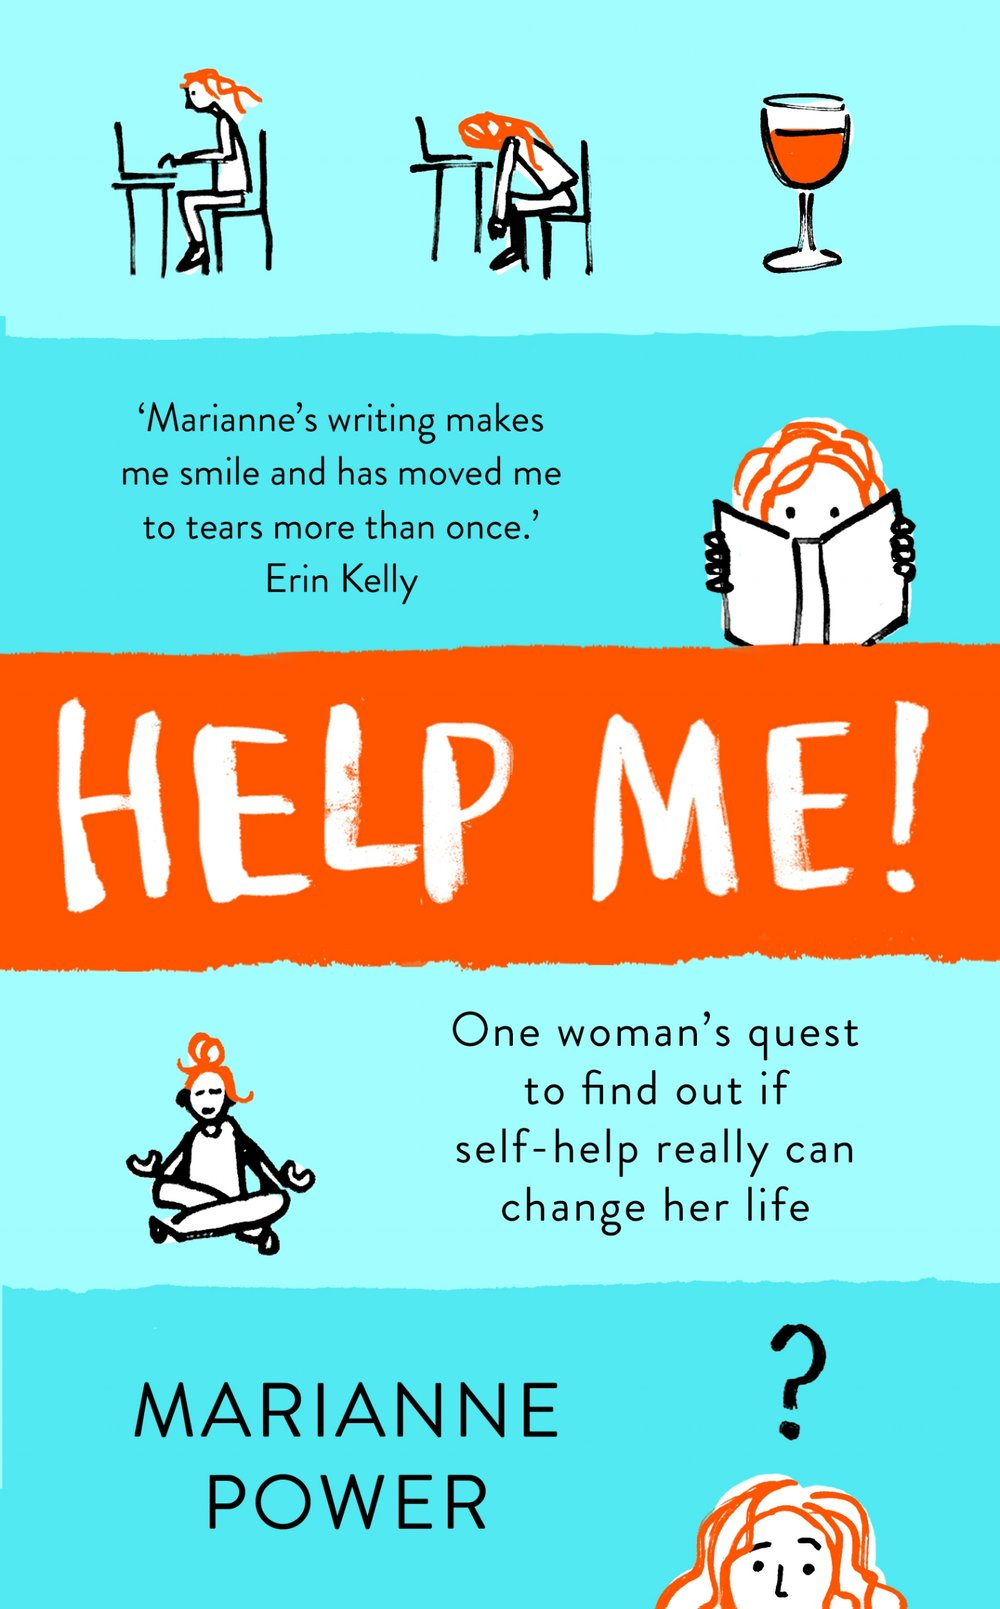 October 2018: Help Me! - By Marianne Power